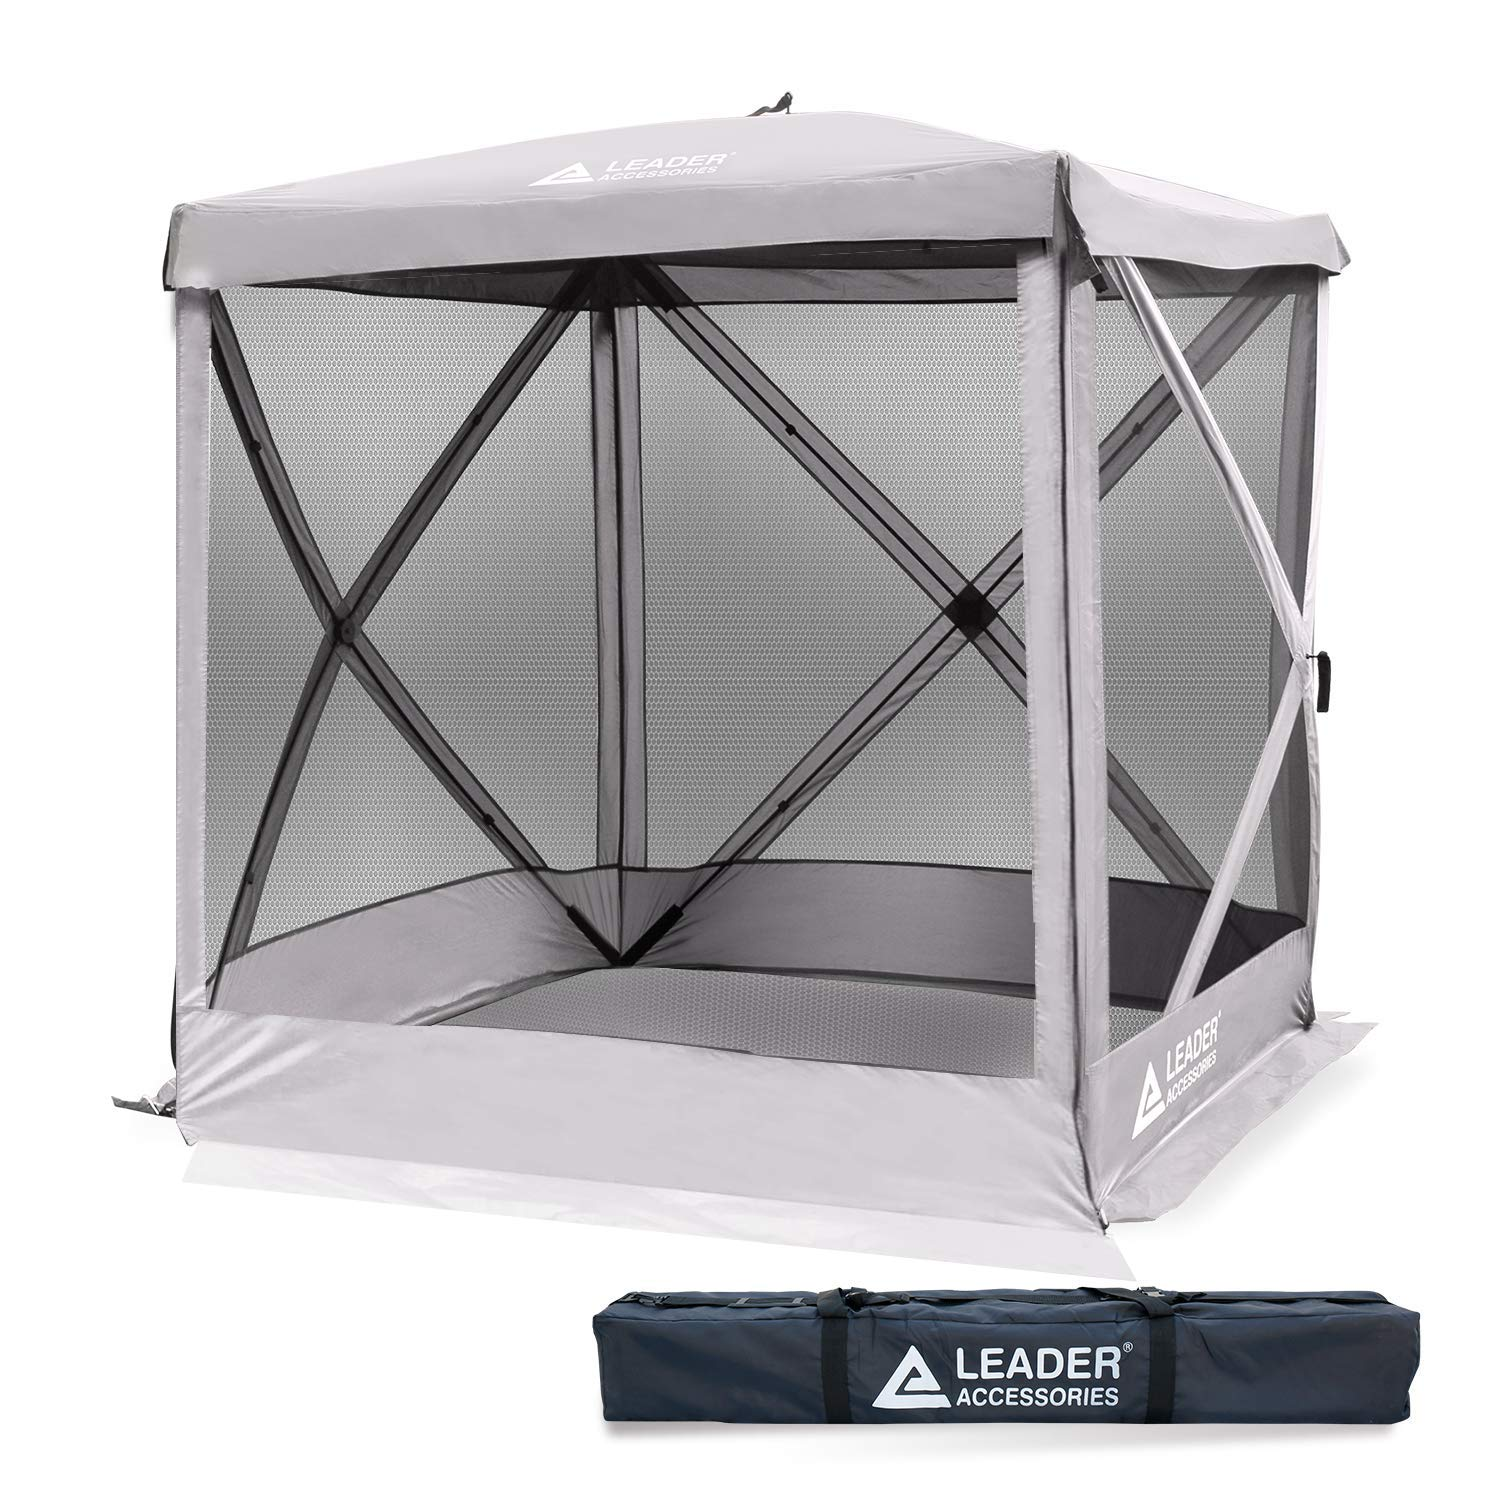 Leader Accessories Pop Up Easy Install Camping Screen House Canopy Instant Gazebo Screen